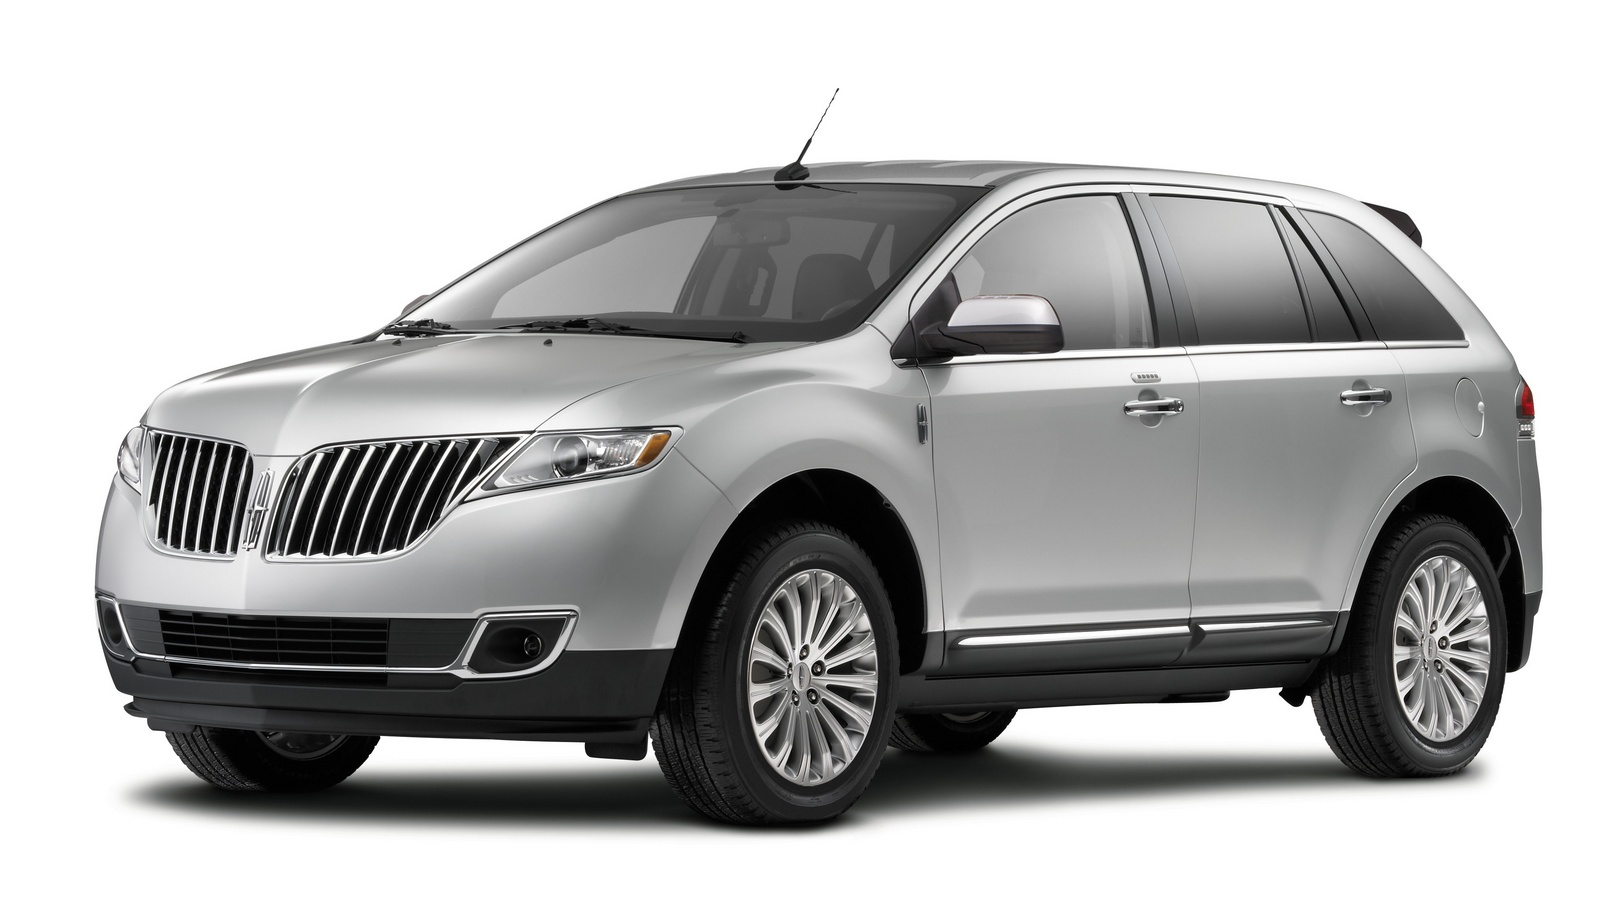 new 2015 2016 lincoln mkx for sale cargurus. Black Bedroom Furniture Sets. Home Design Ideas